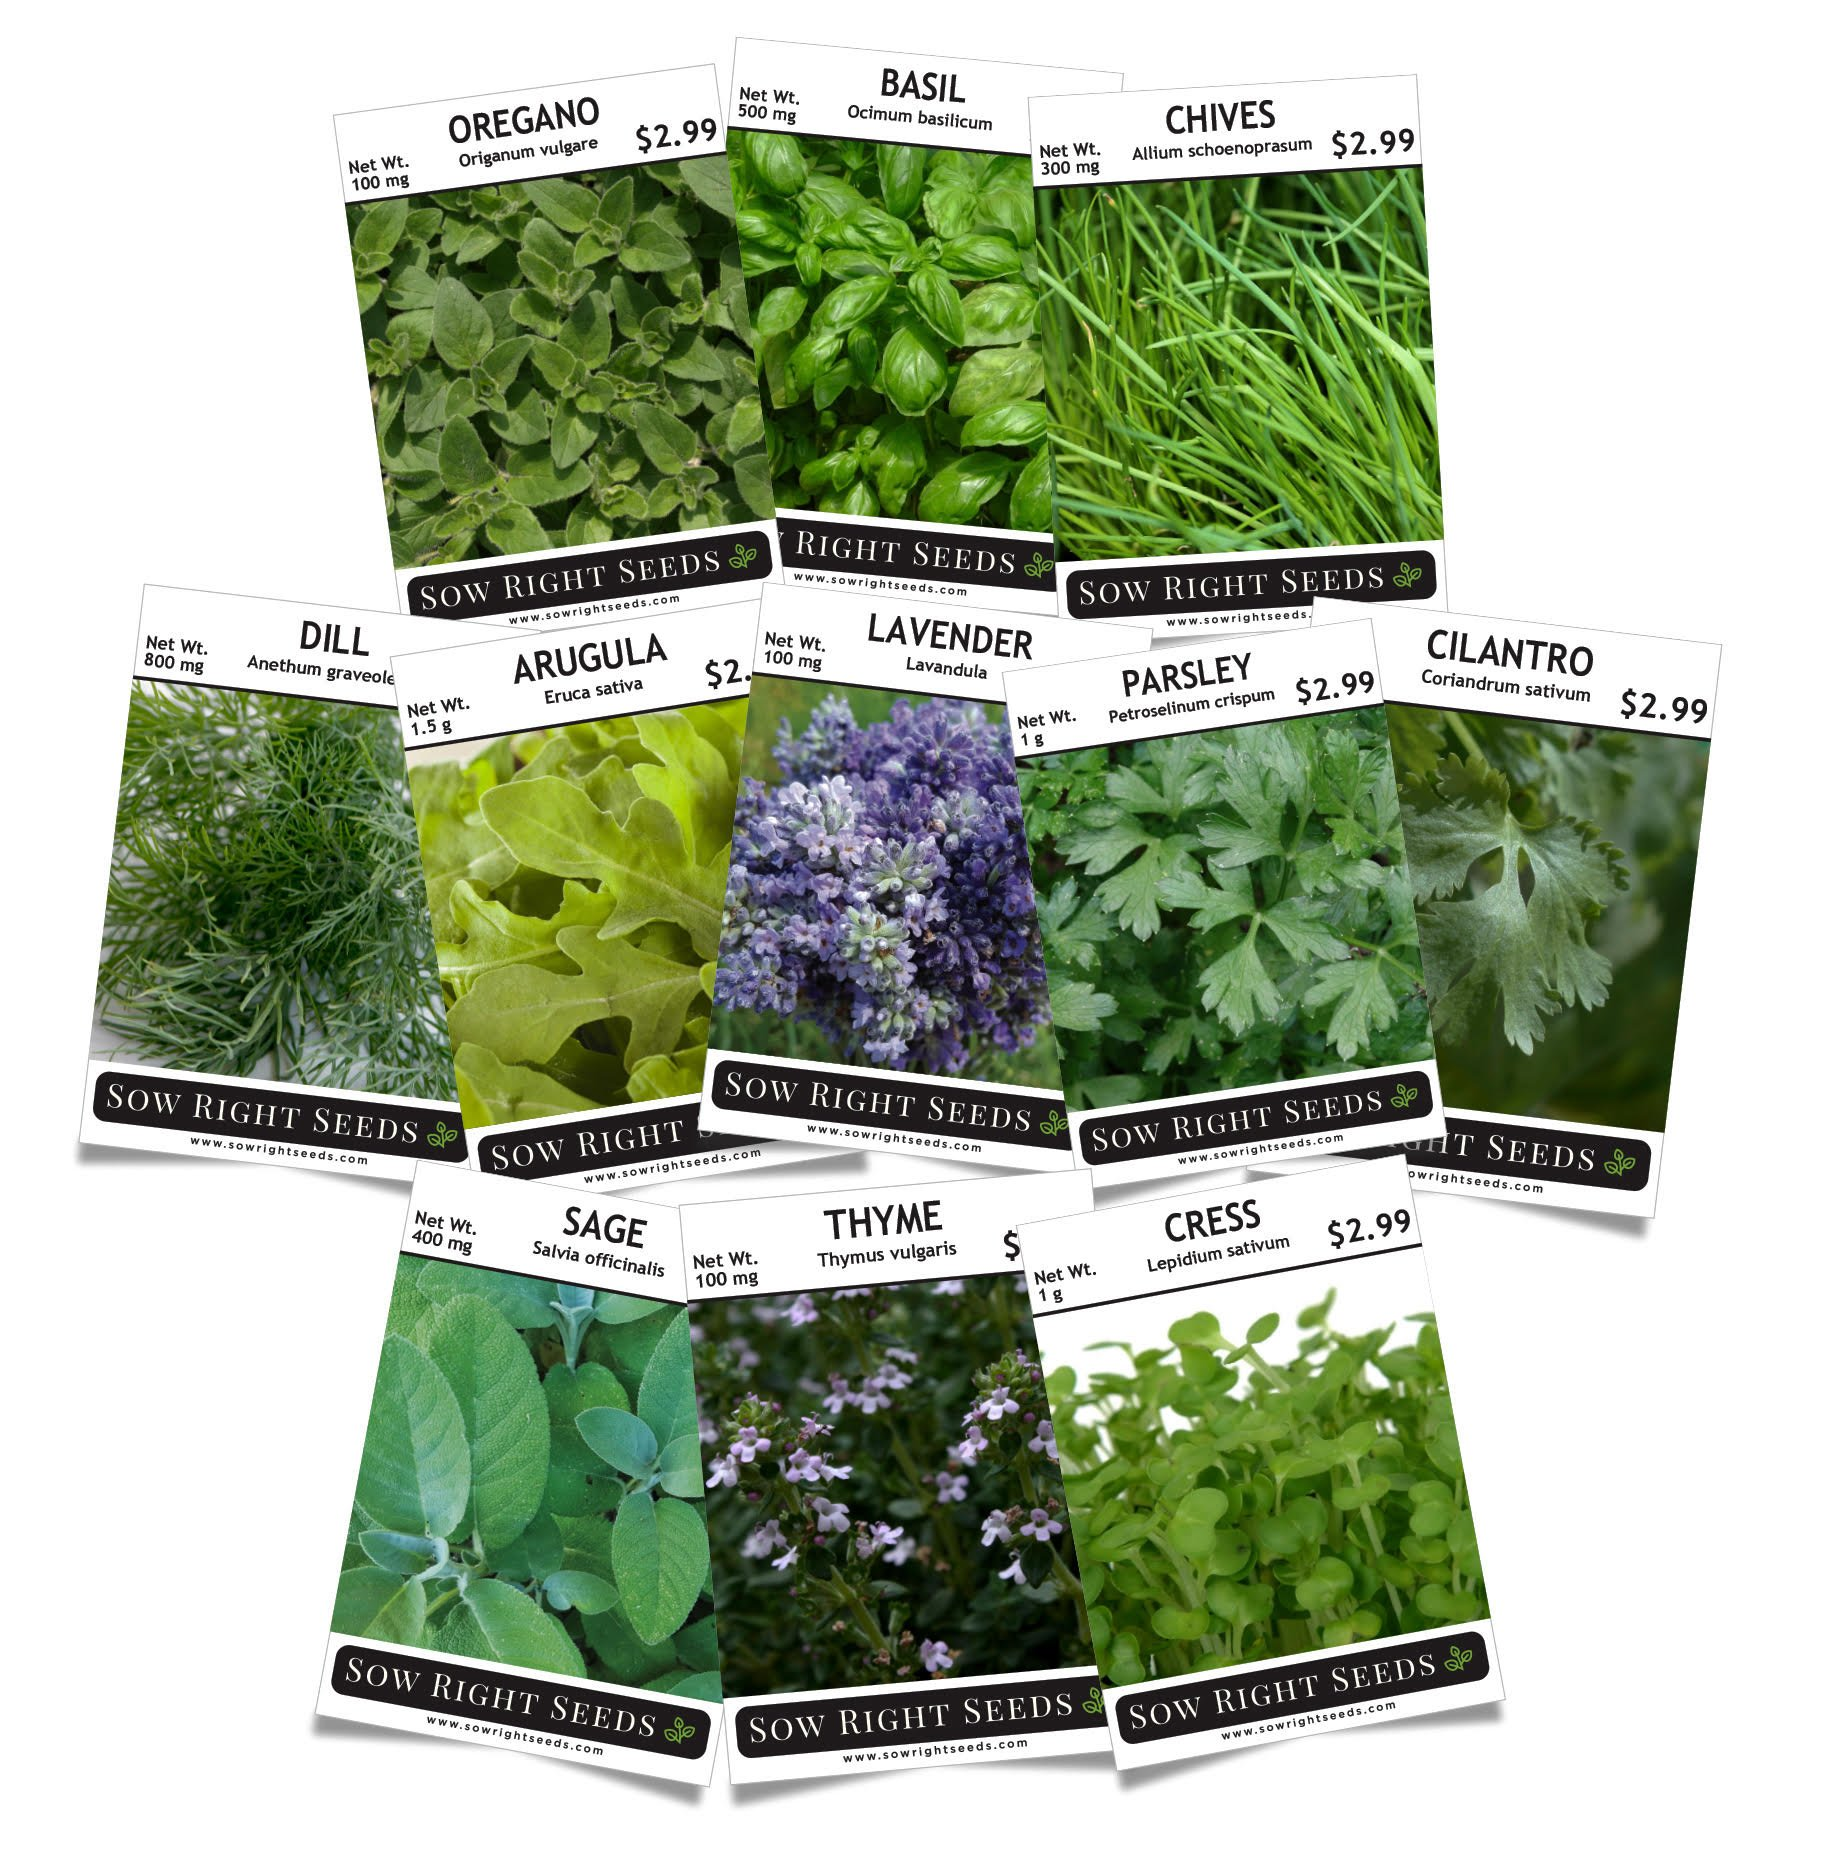 Sow Right Seeds - Herb Garden Seed Collection - Arugula, Basil, Chives, Cilantro, Cress, Dill, Lavender, Oregano, Parsley, Sage & Thyme; Non GMO Heirloom Seeds with Full Instructions for Planting